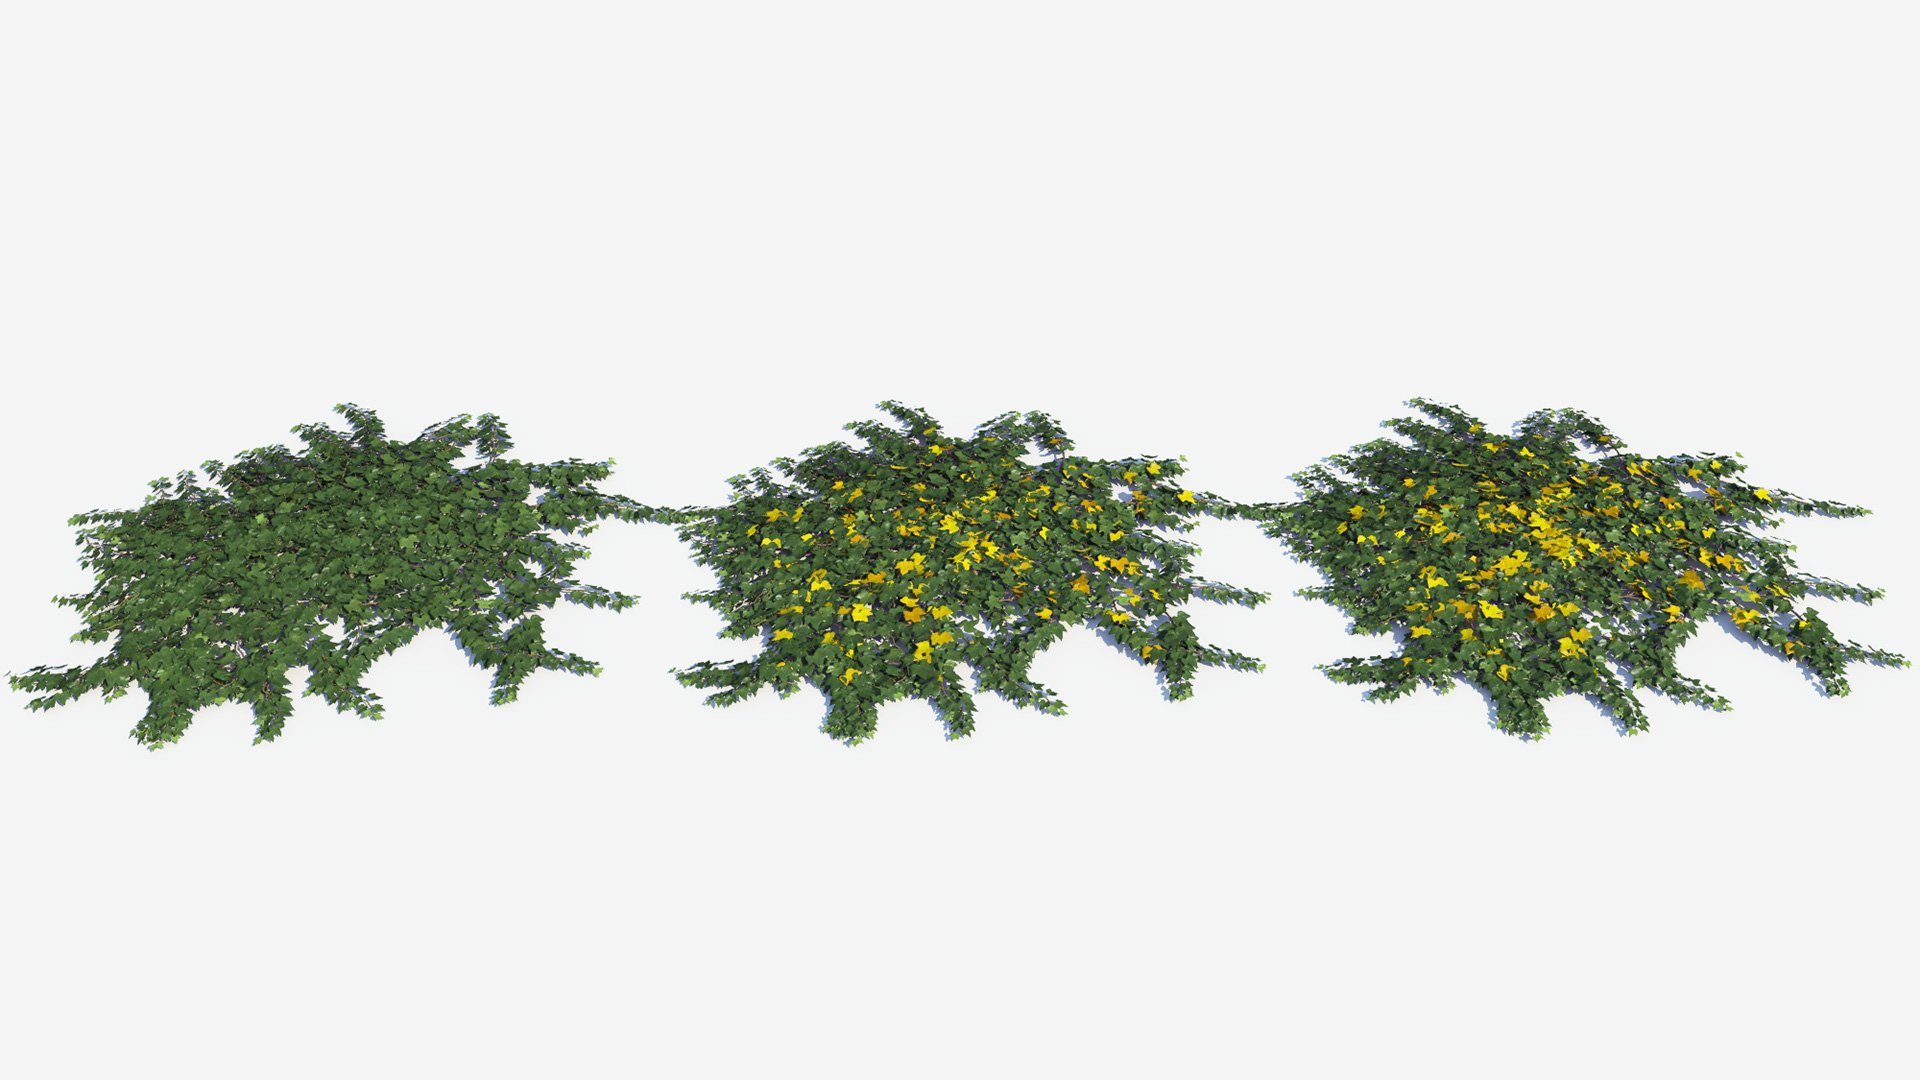 3D model of the Green ivy ground cover Hedera helix ground cover green health variations